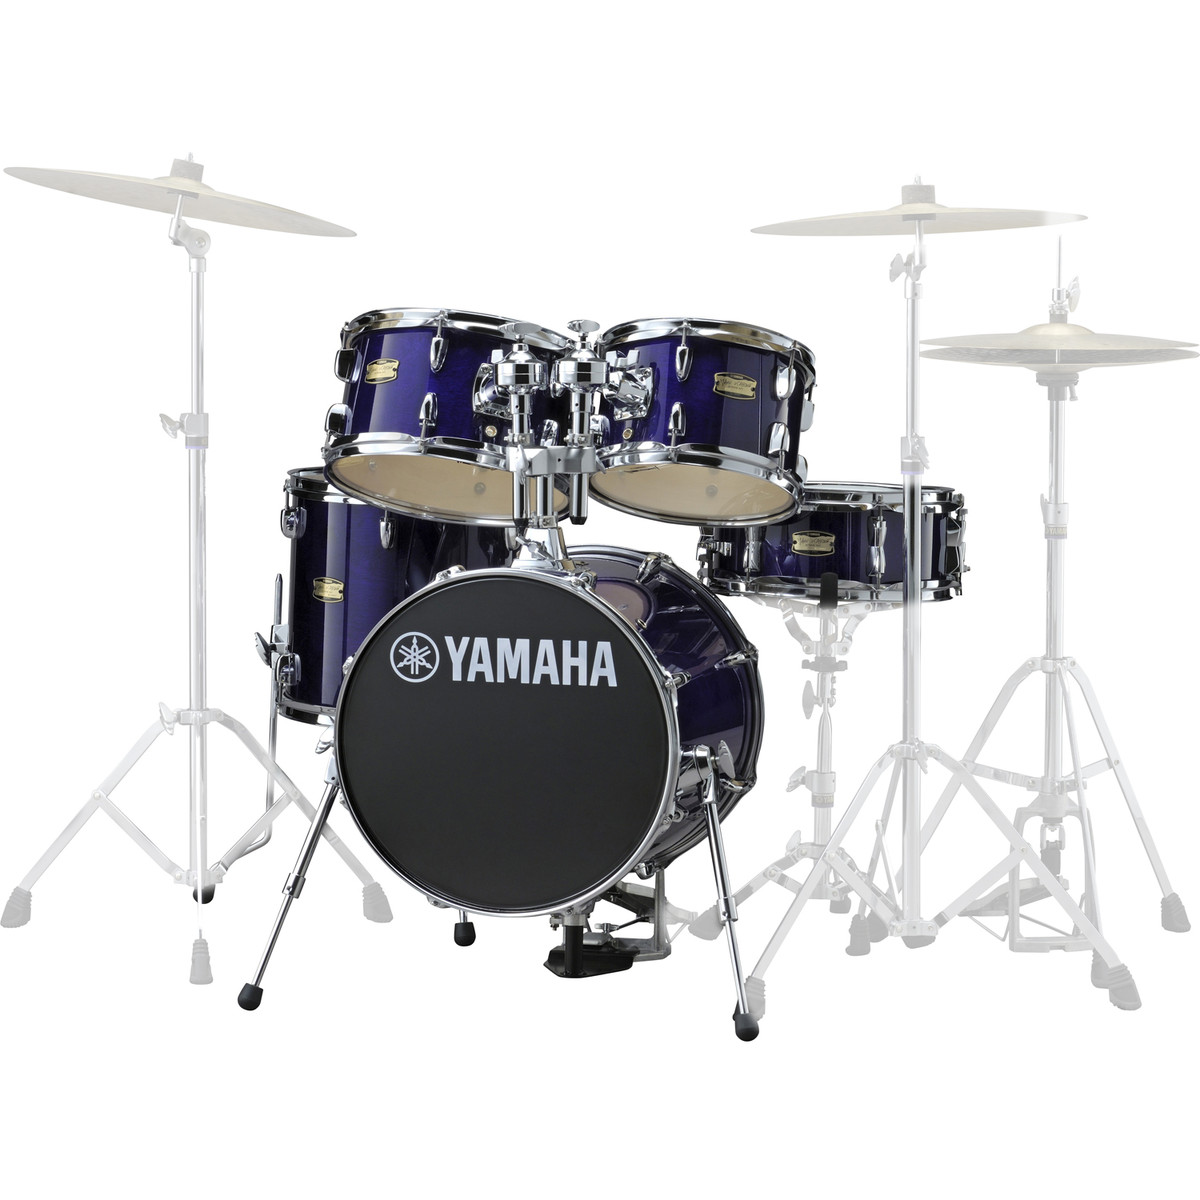 Yamaha manu katche drum kit compare prices at foundem for Yamaha portable drums